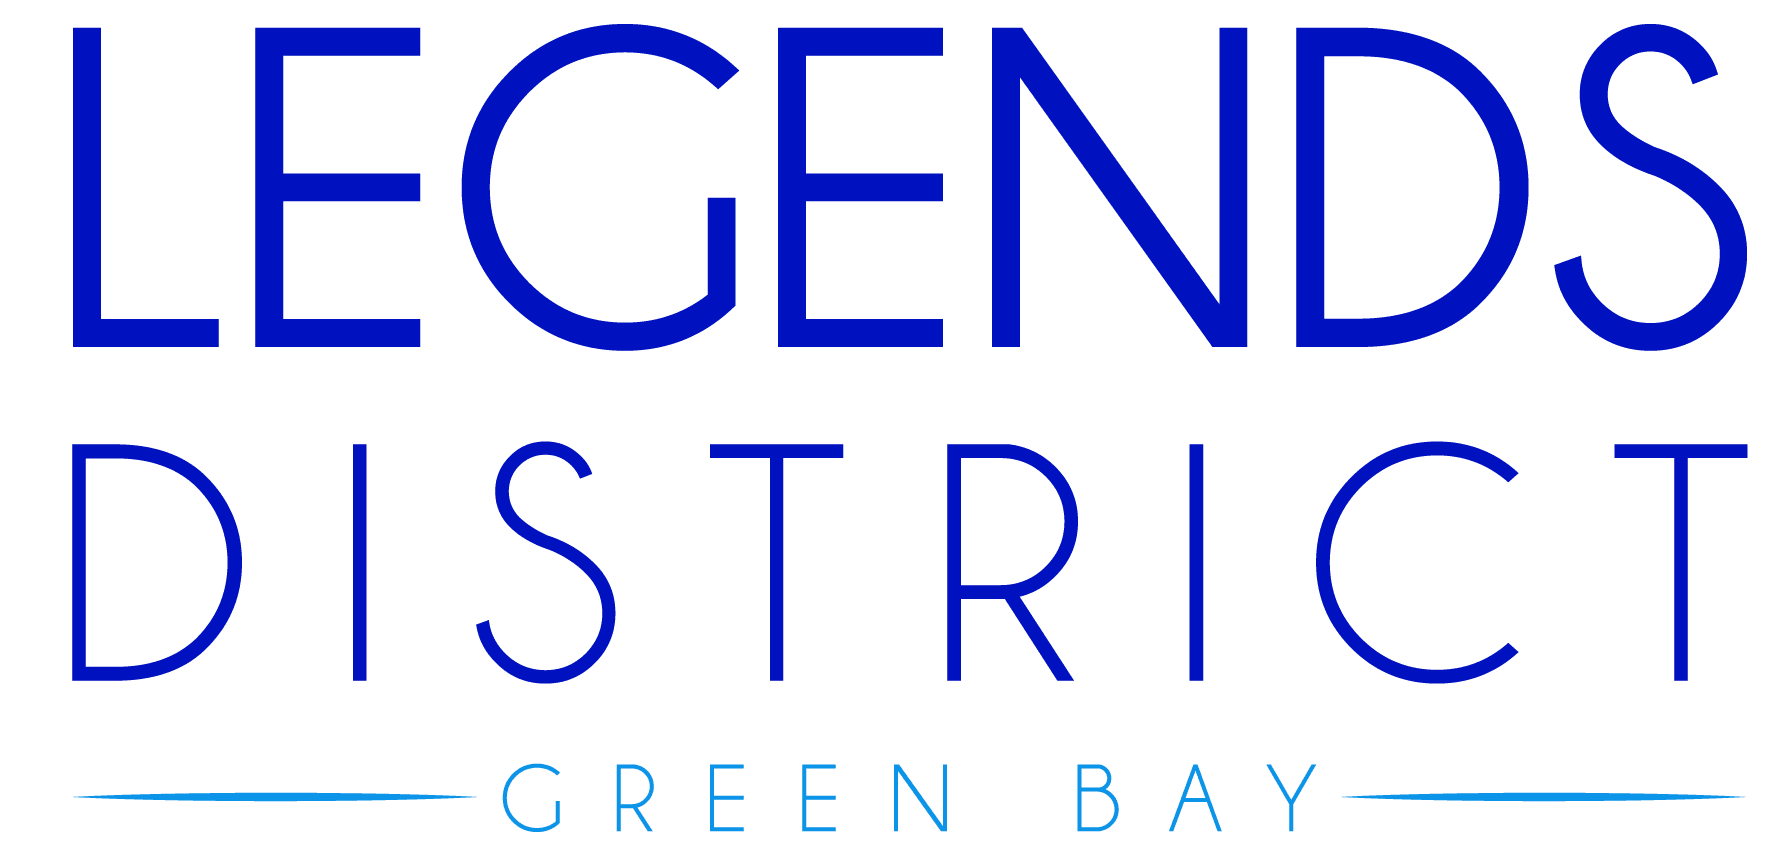 Legends District Master Plan Logo